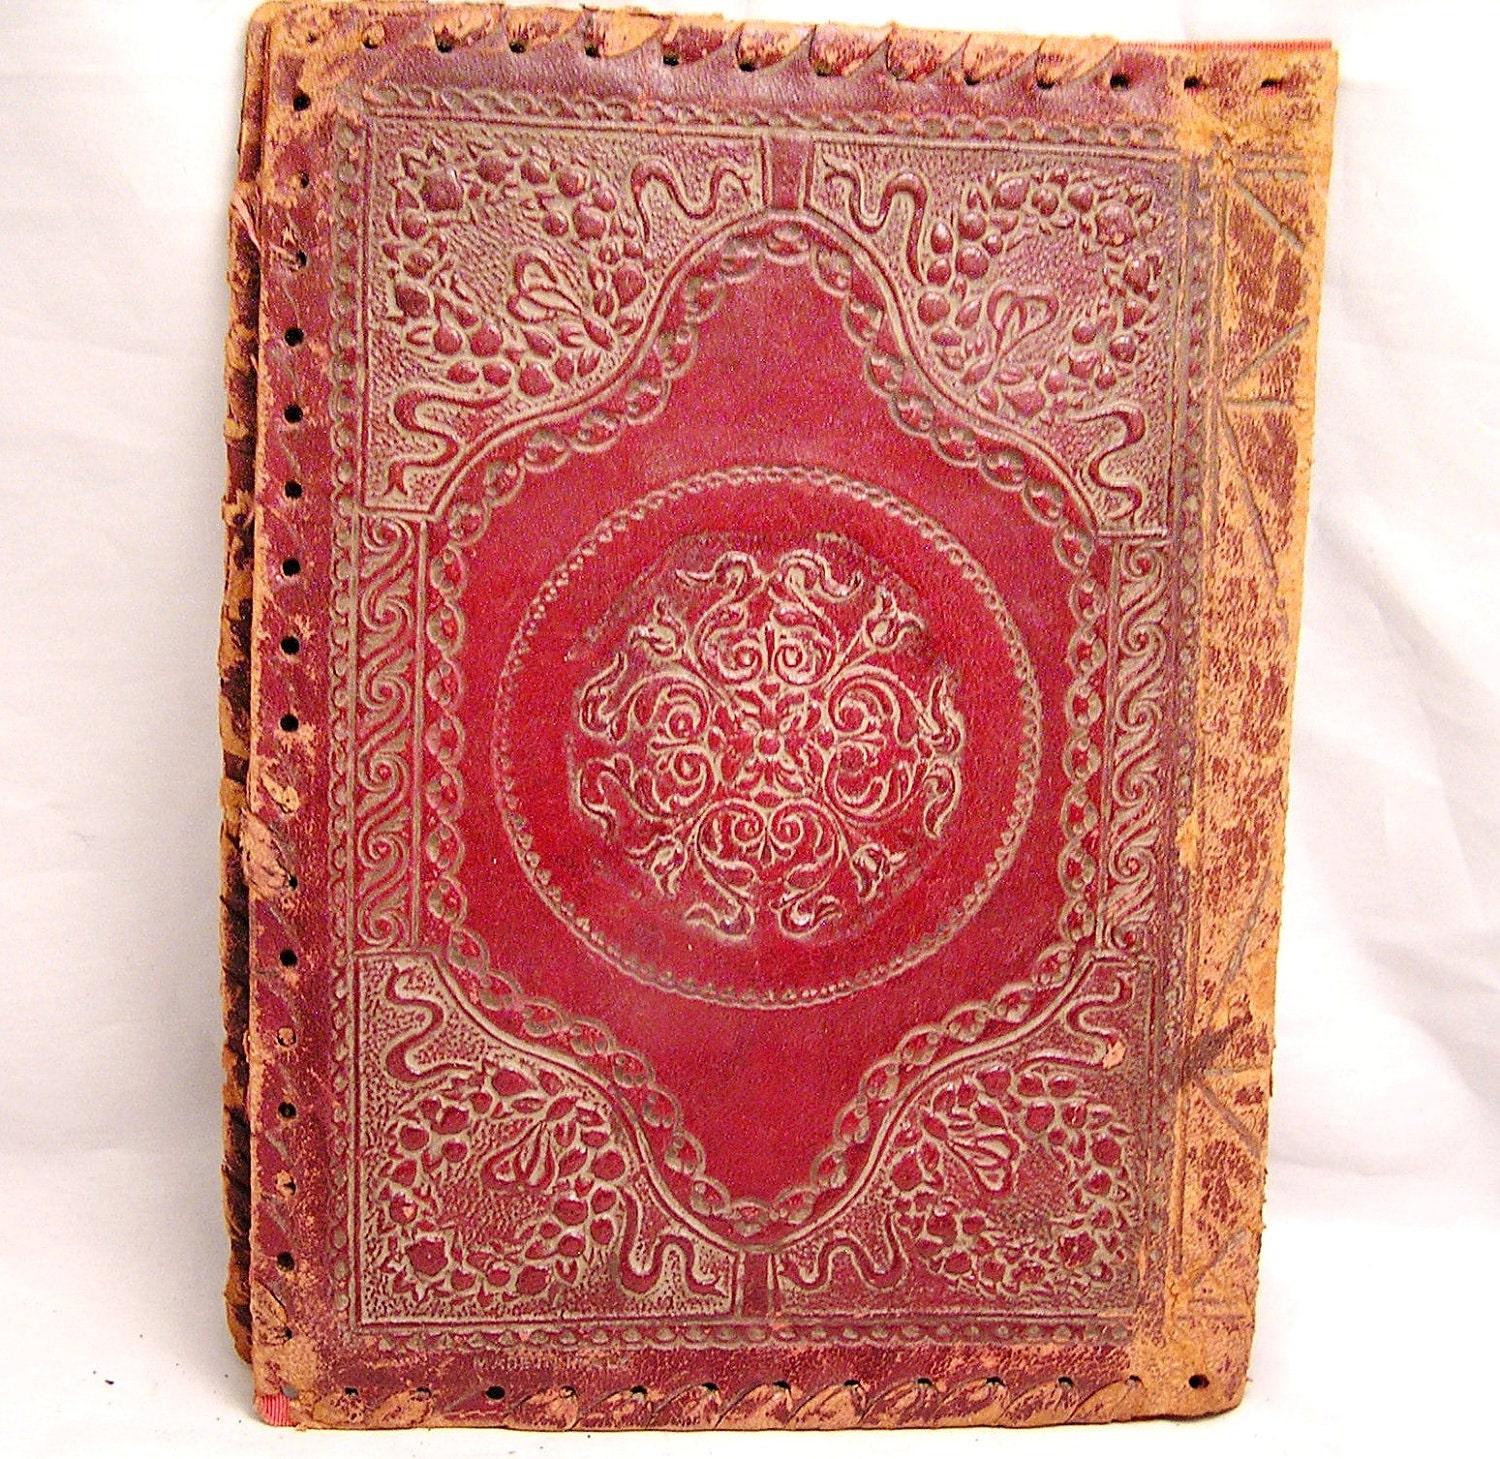 Embossing Fabric Book Cover : Antique embossed leather book cover with lion